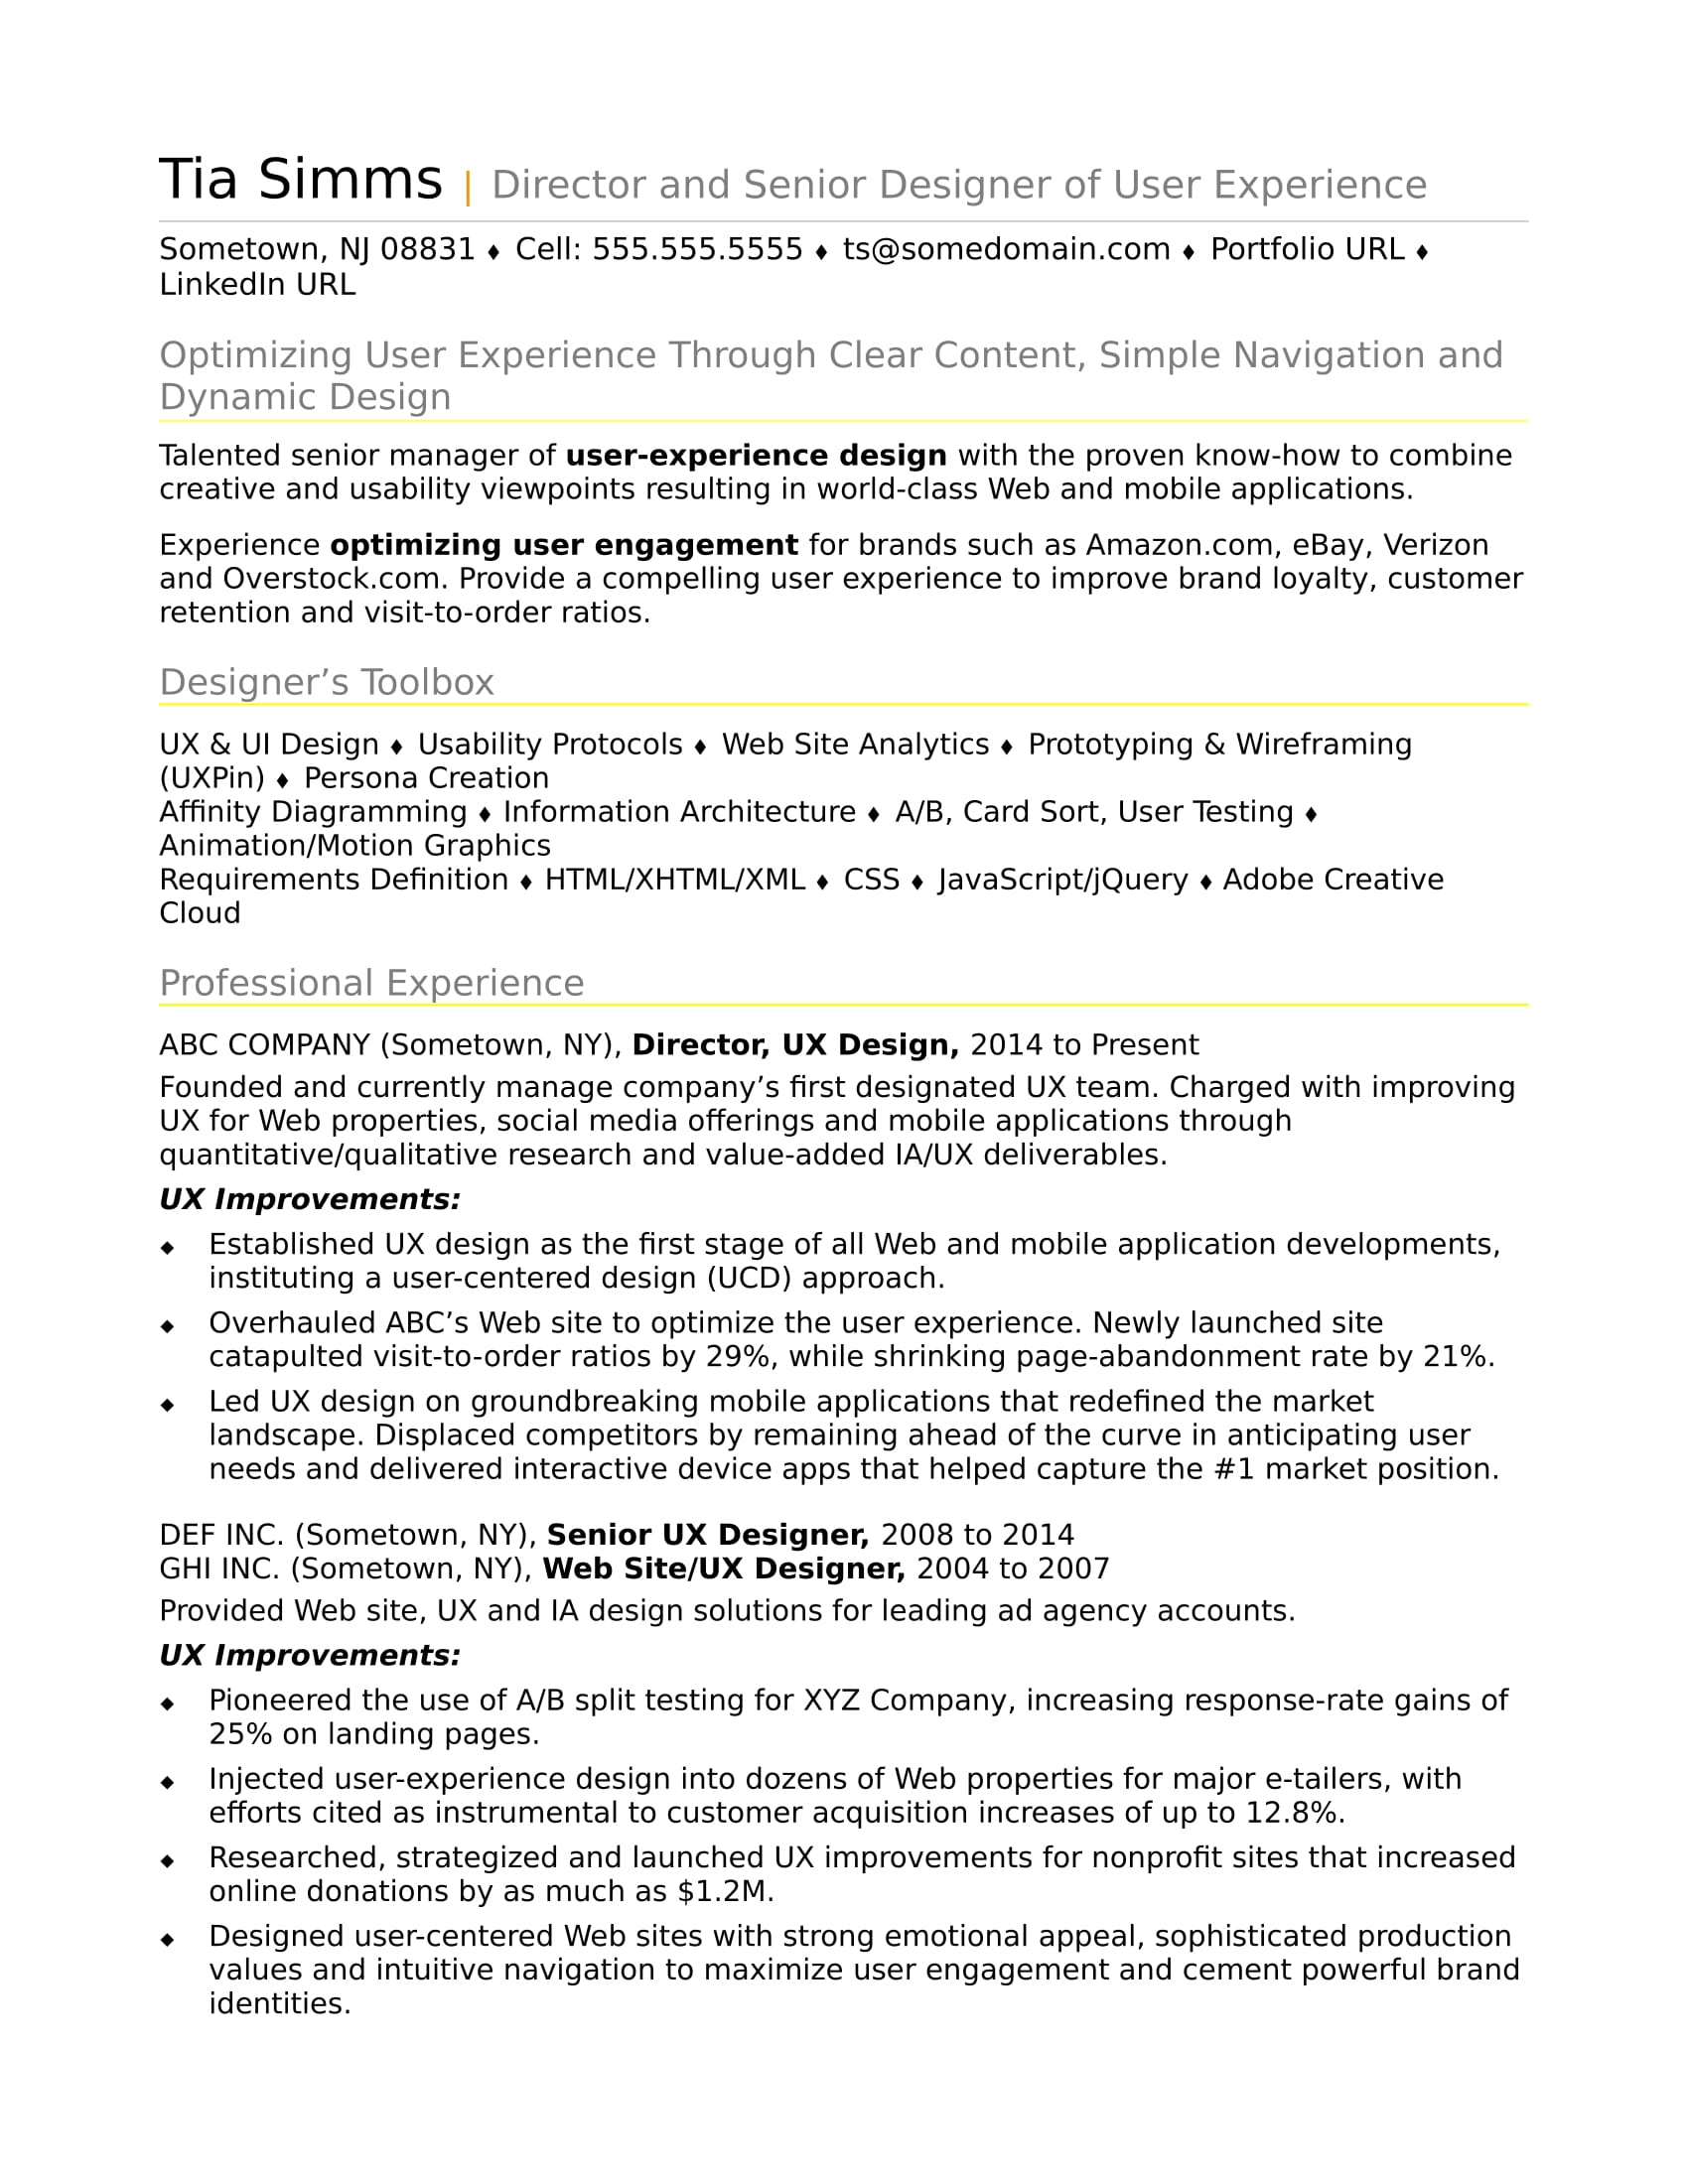 Sample resume for an experienced ux designer monster sample resume for an experienced ux designer yelopaper Choice Image